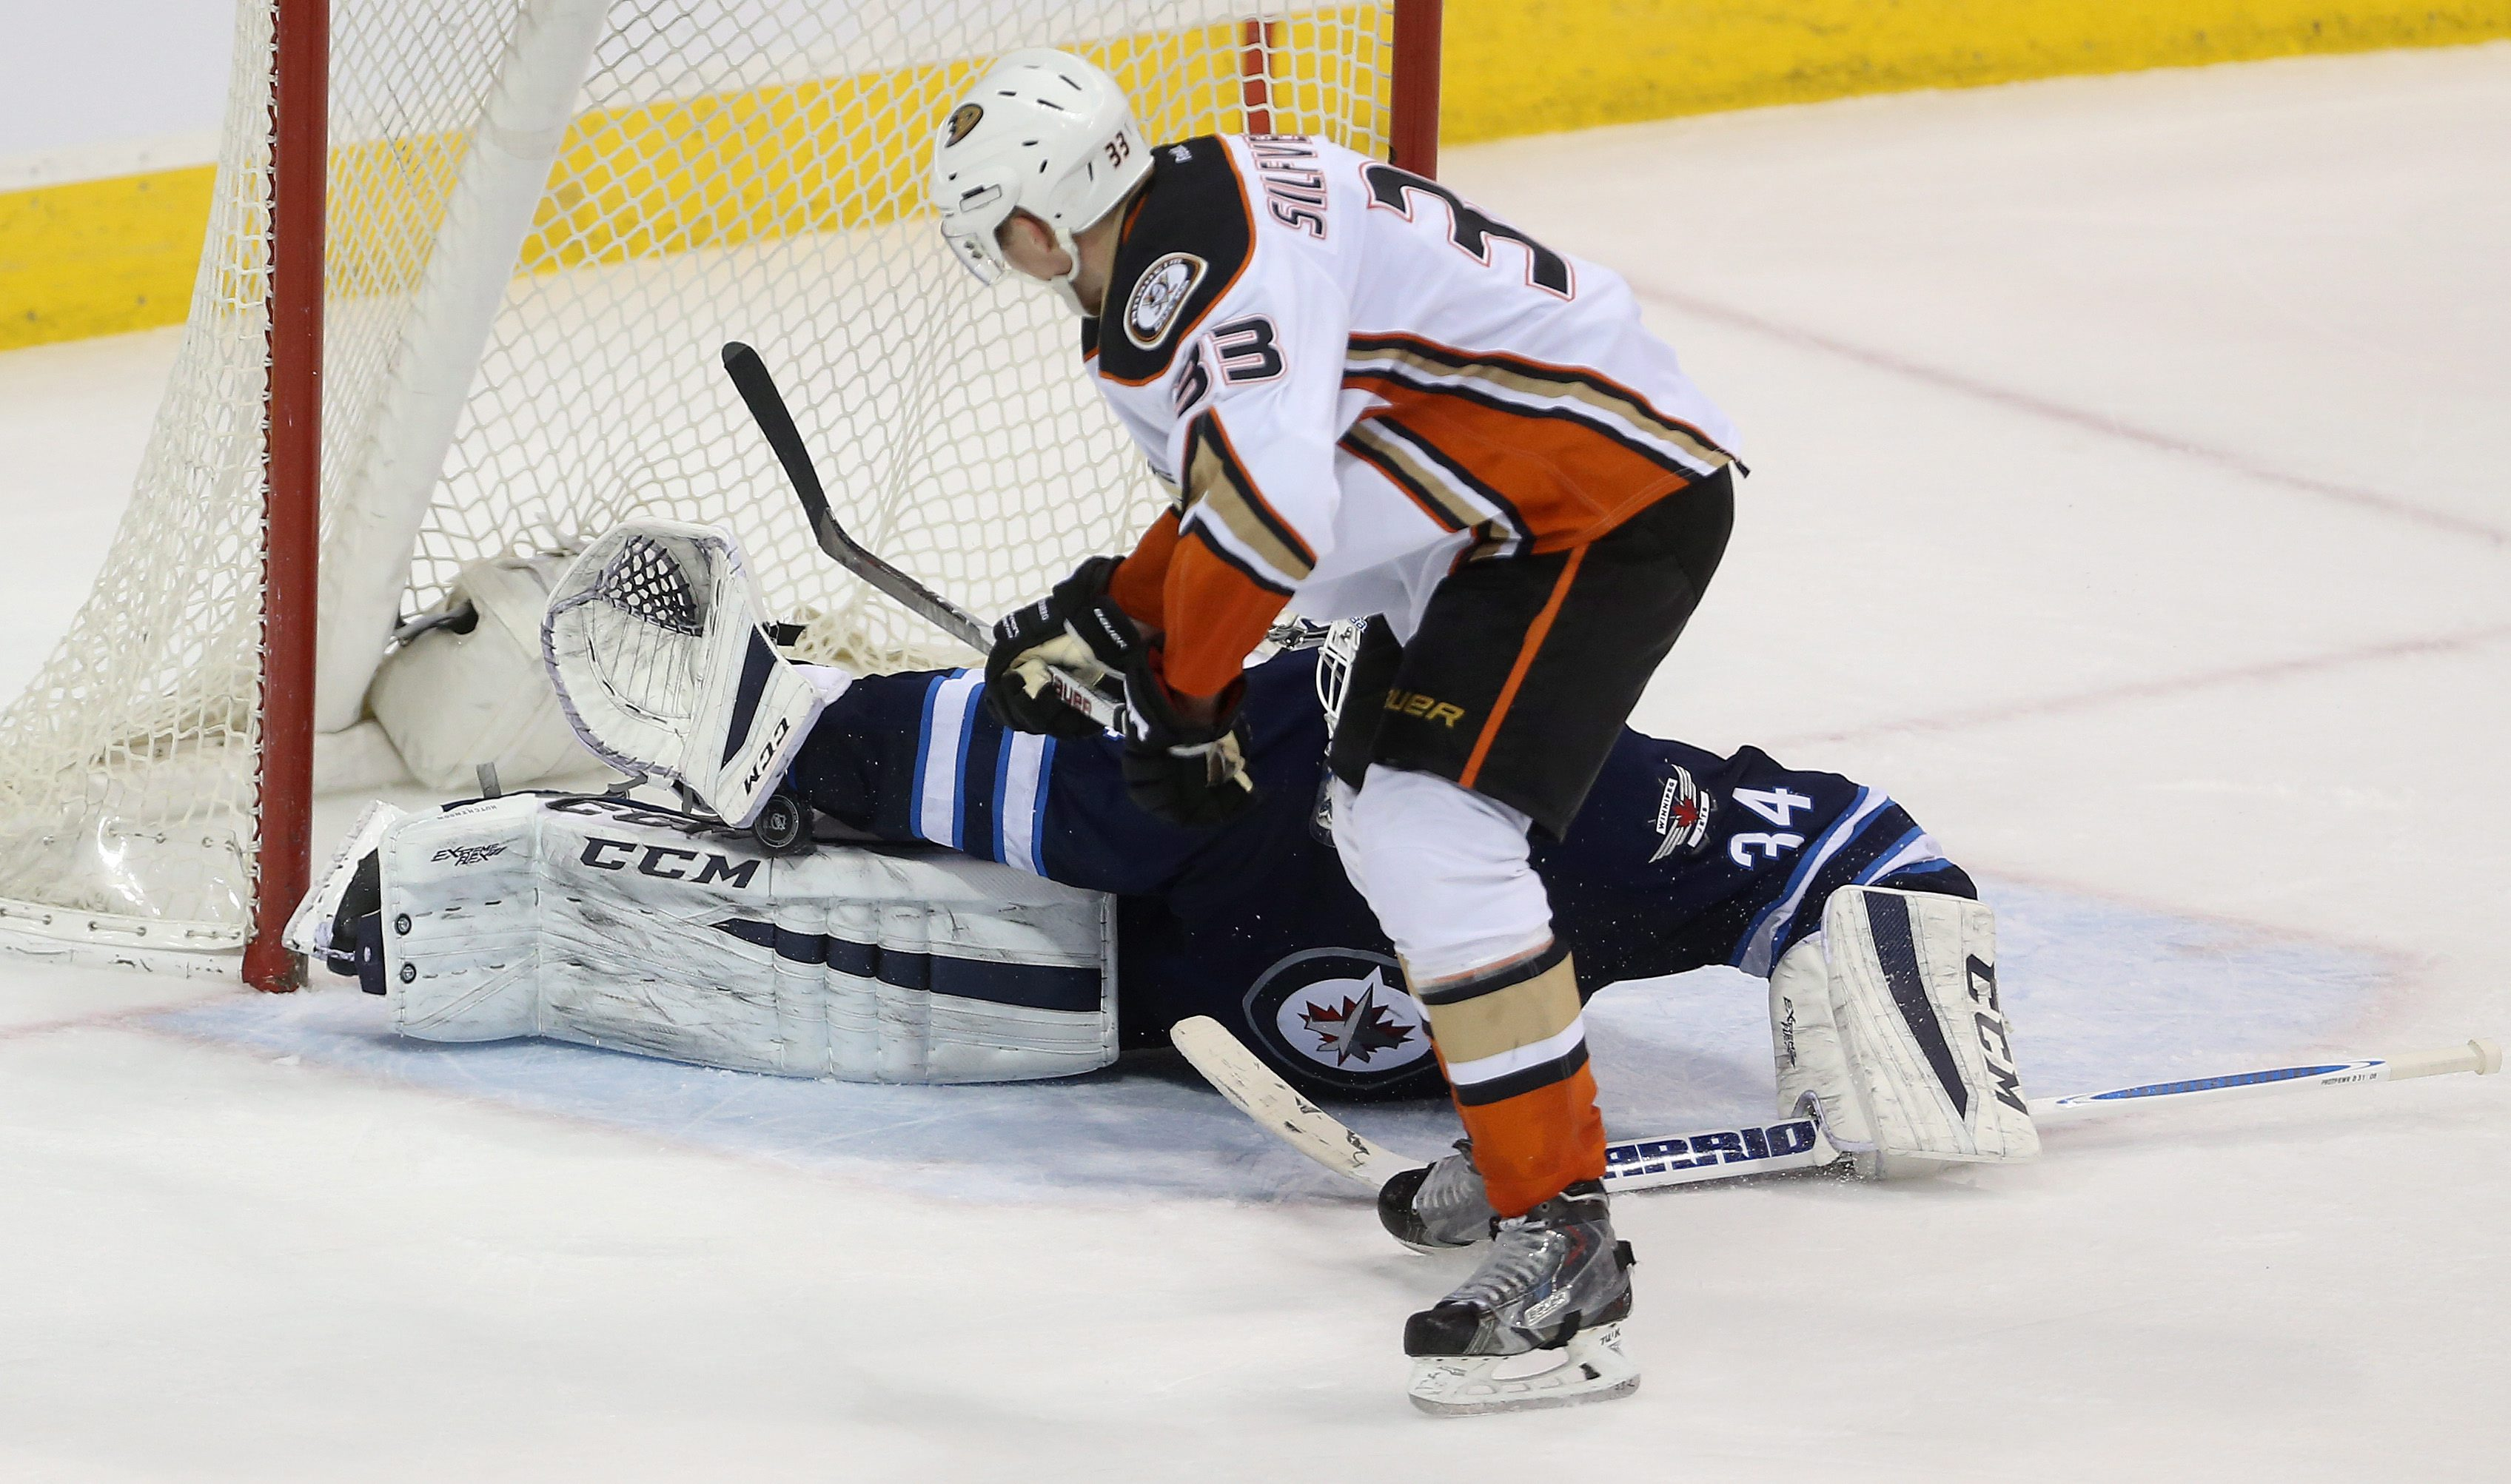 Winnipeg Jets' goaltender Michael Hutchinson (34) stretches across the net to make the first save on Anaheim Ducks Jakob Silfverberg (33), but he would score on his own rebound during overtime NHL hockey action in Winnipeg, Canada, Sunday, March 20, 2016.